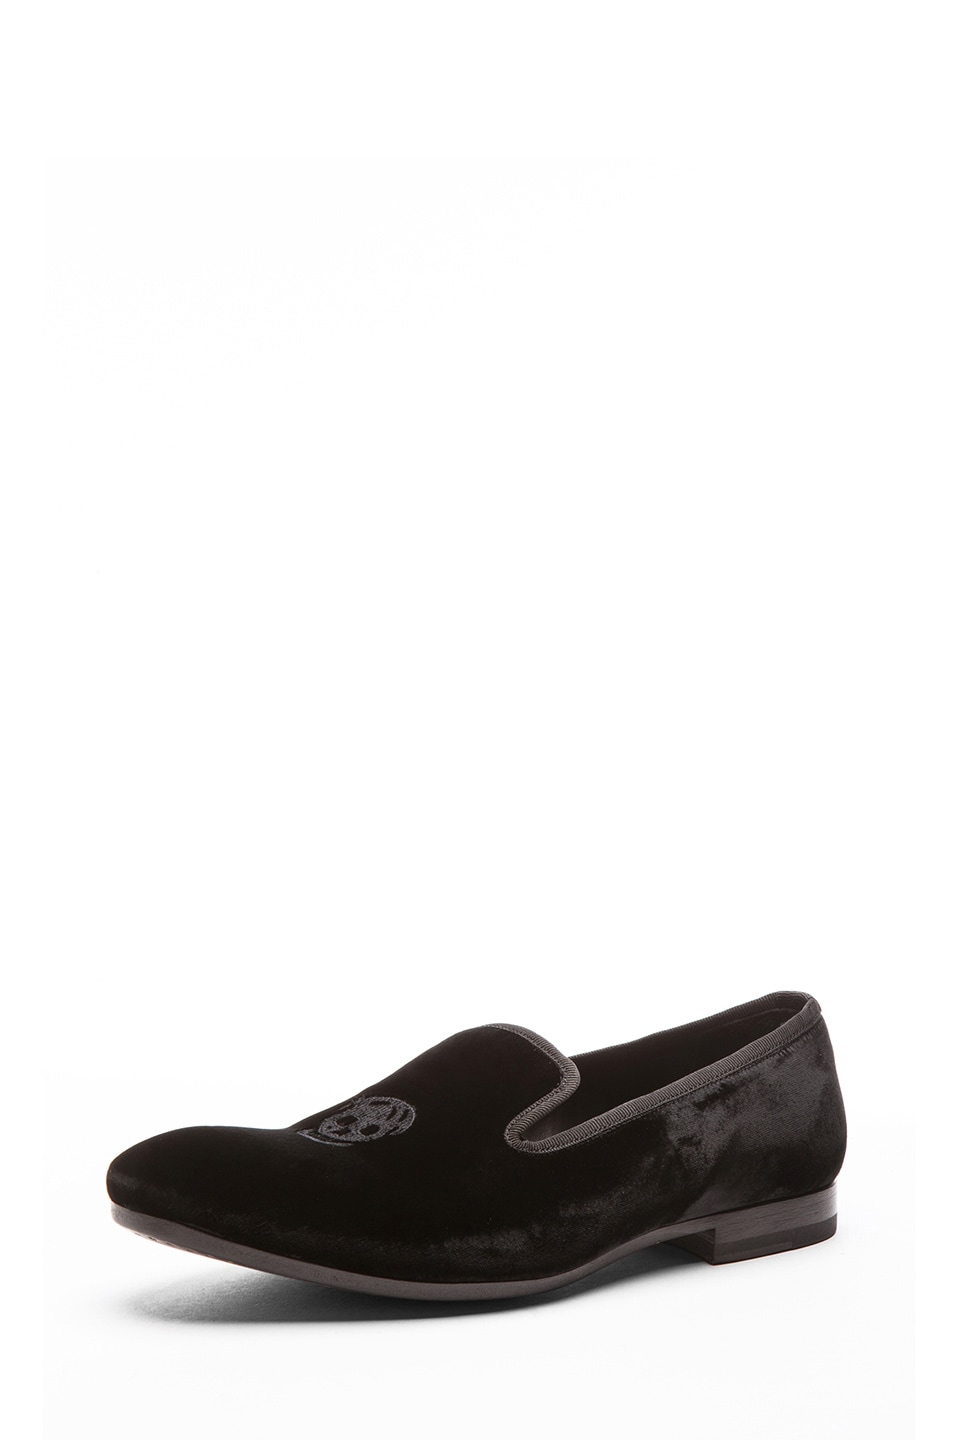 Image 2 of Alexander McQueen Velvet Loafer in Black